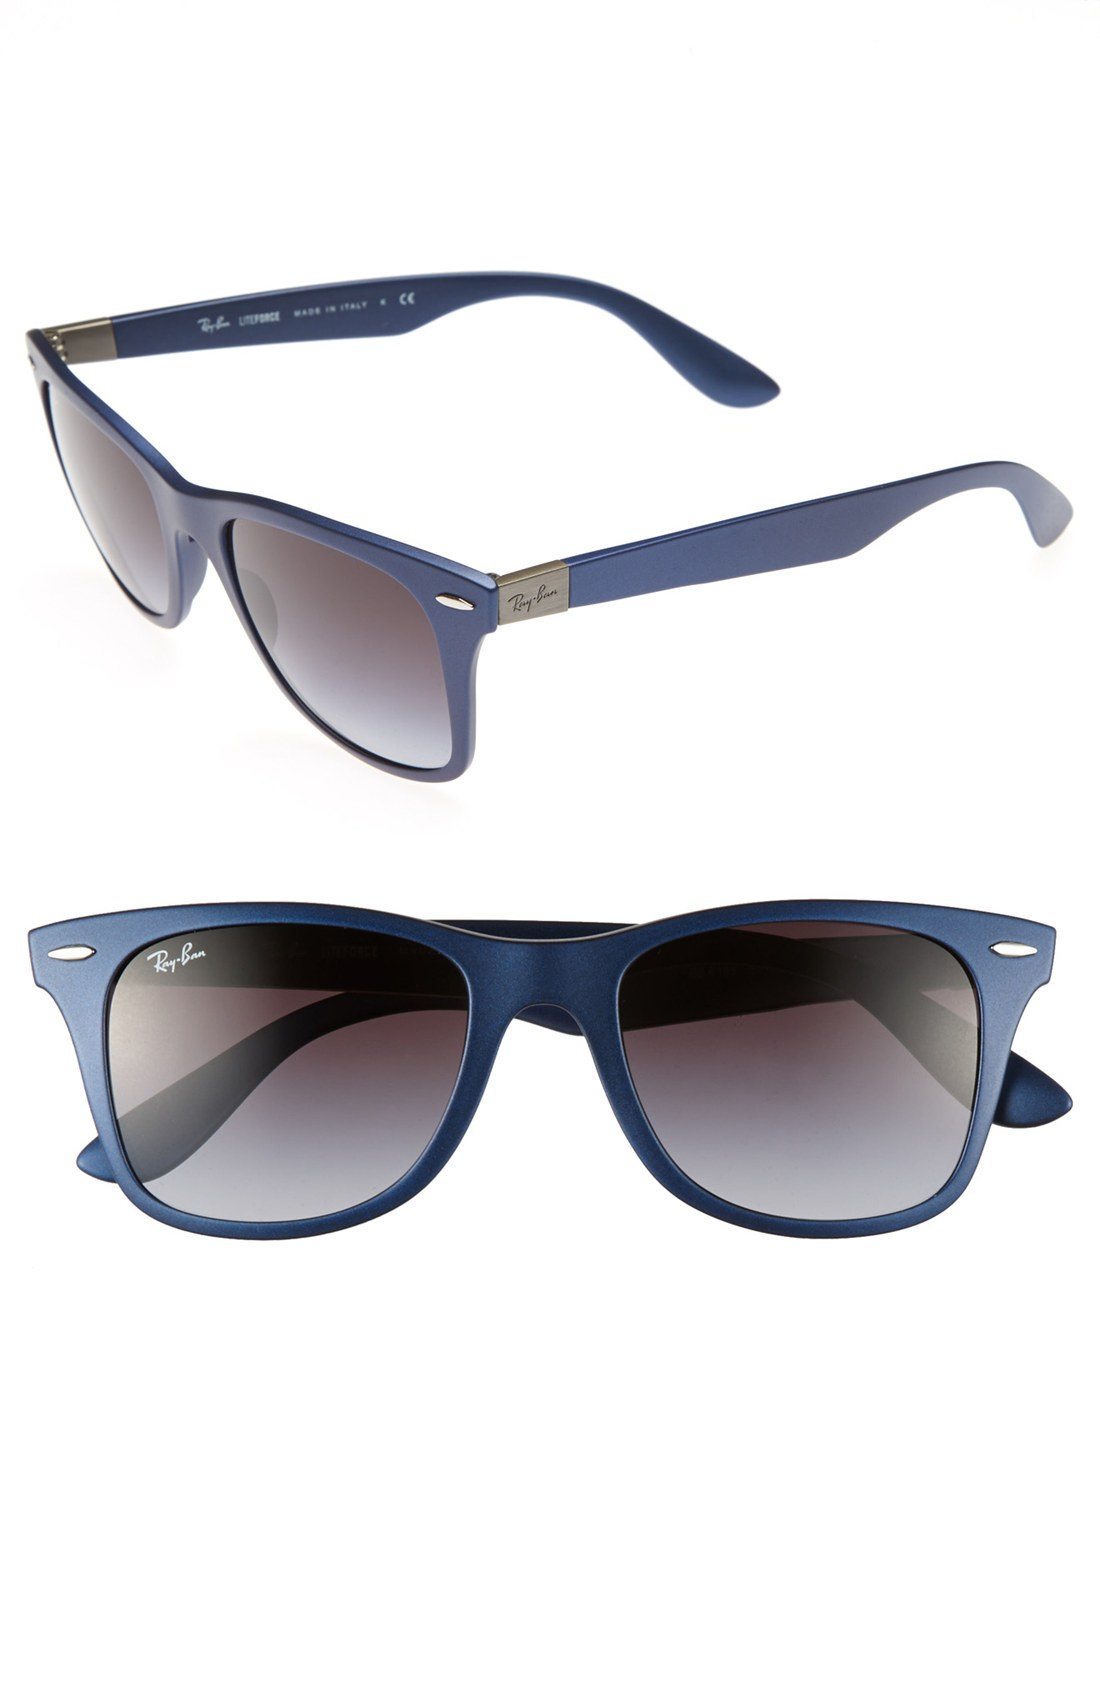 dab94ebd31 Ray Ban Gunmetal Gray 34452 Weather « Heritage Malta